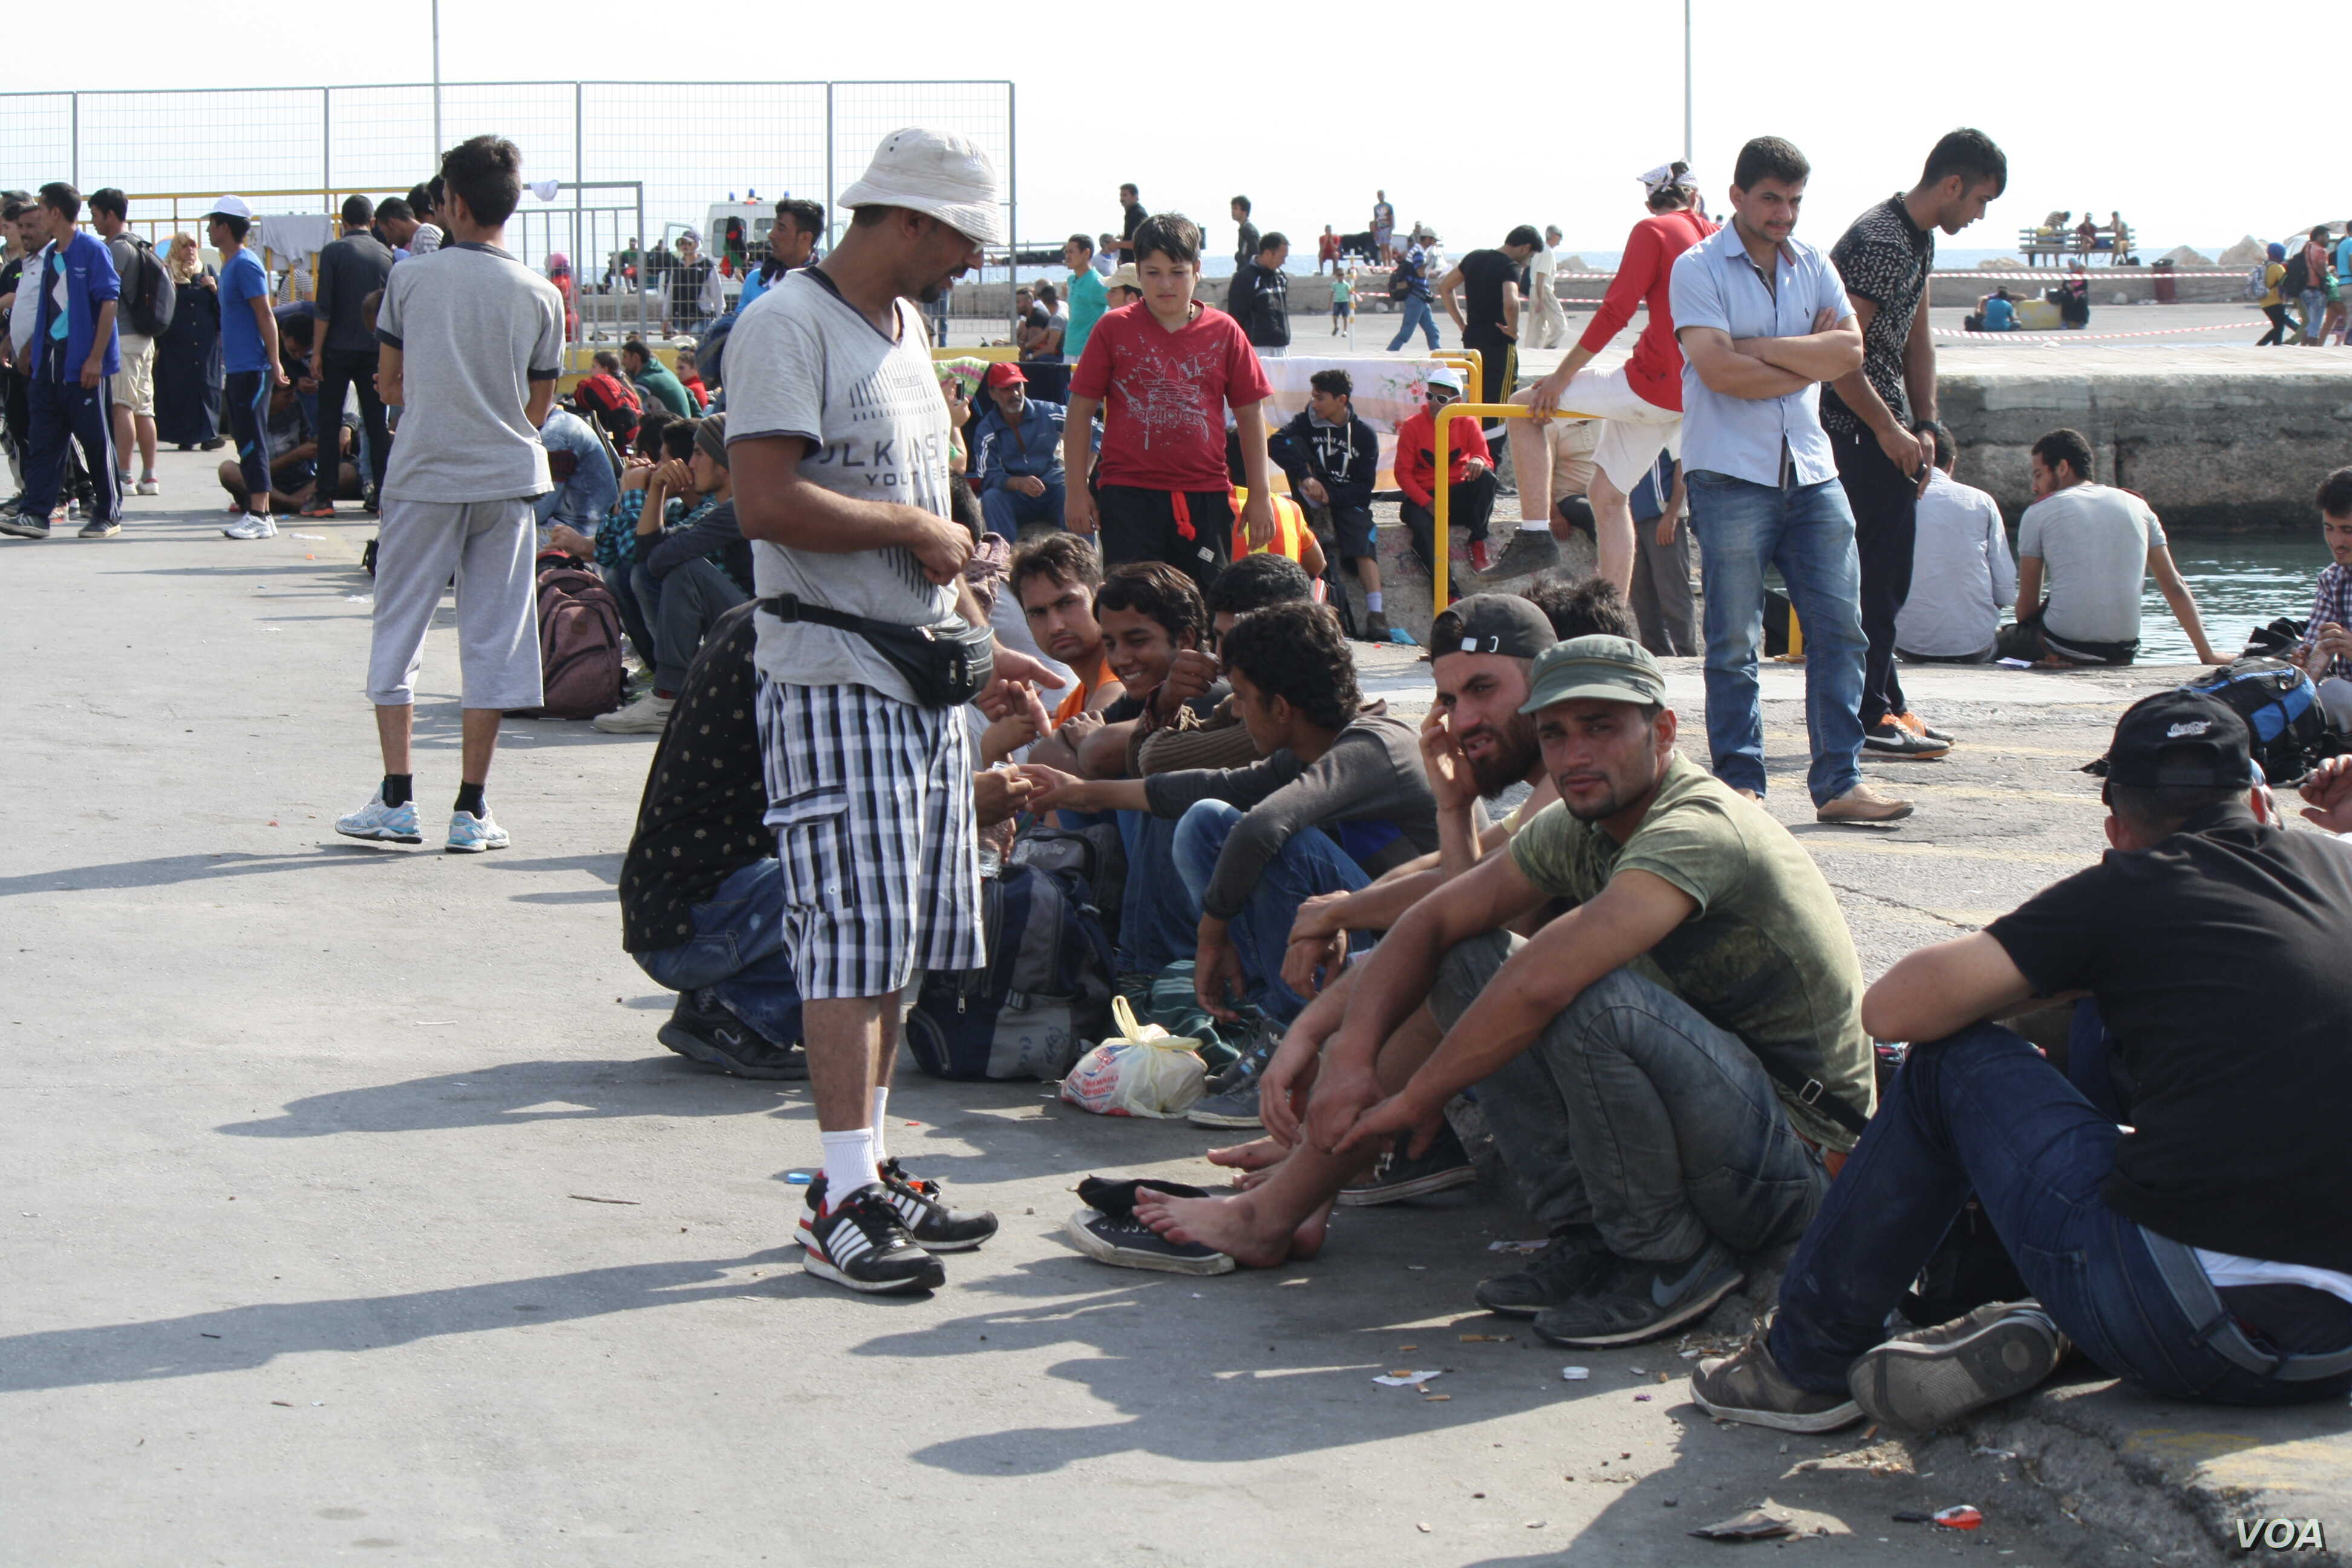 As the passengers loaded, those who could not get a ticket wait on the streets, hoping to board in the coming days, Sept. 12, 2015. (Credit: Heather Murdock/VOA)